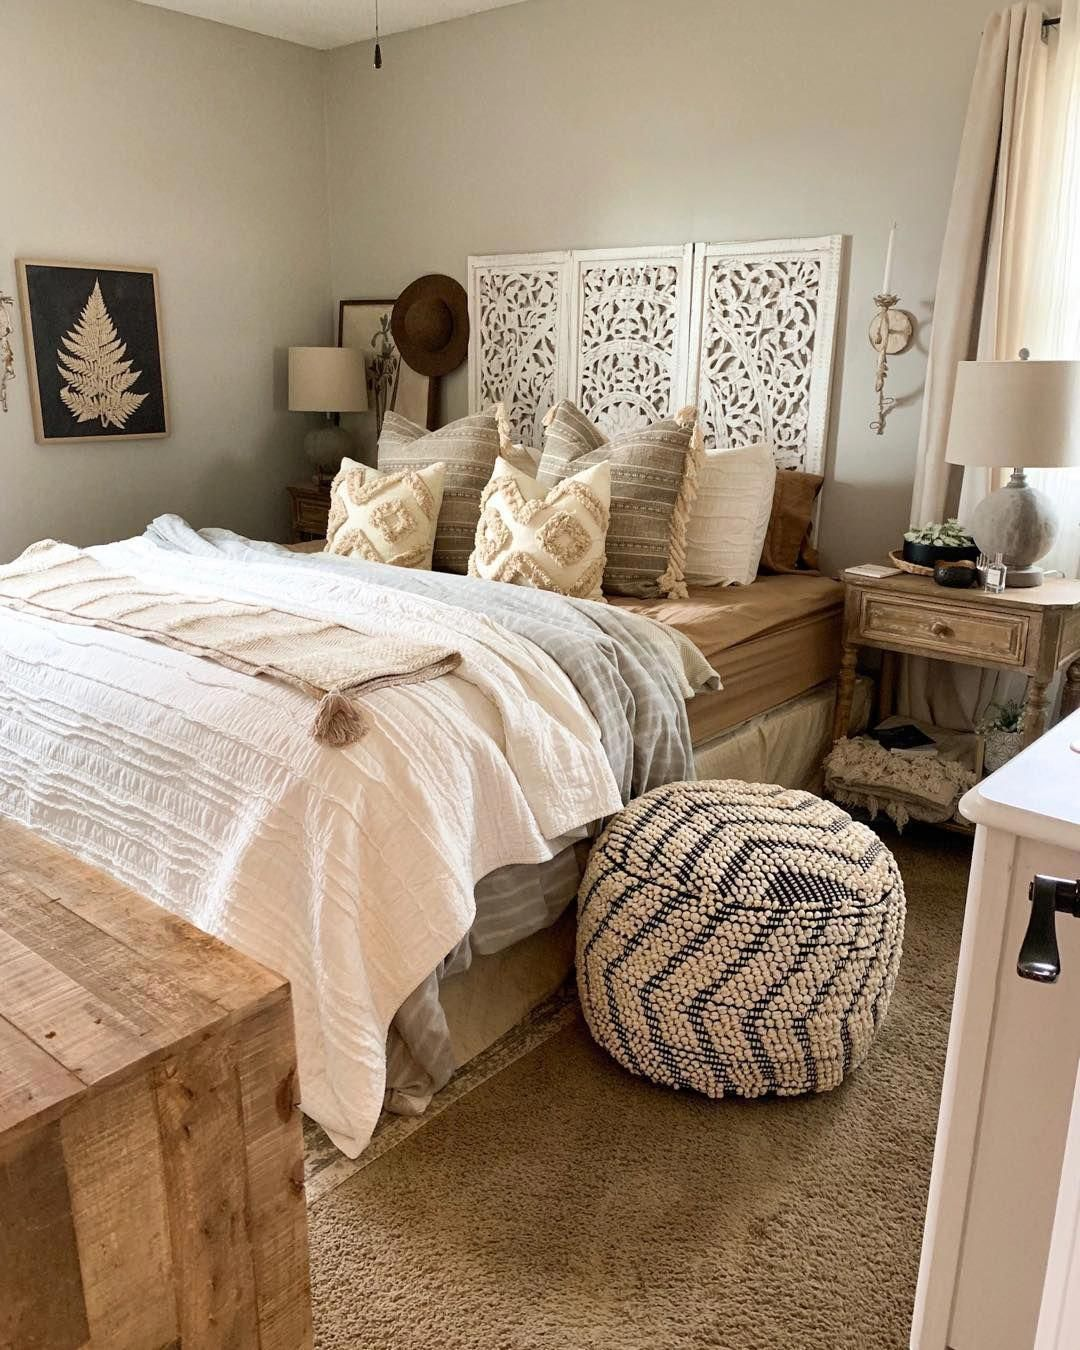 Awesome small bedroom ideas for couples #bedroom # ...